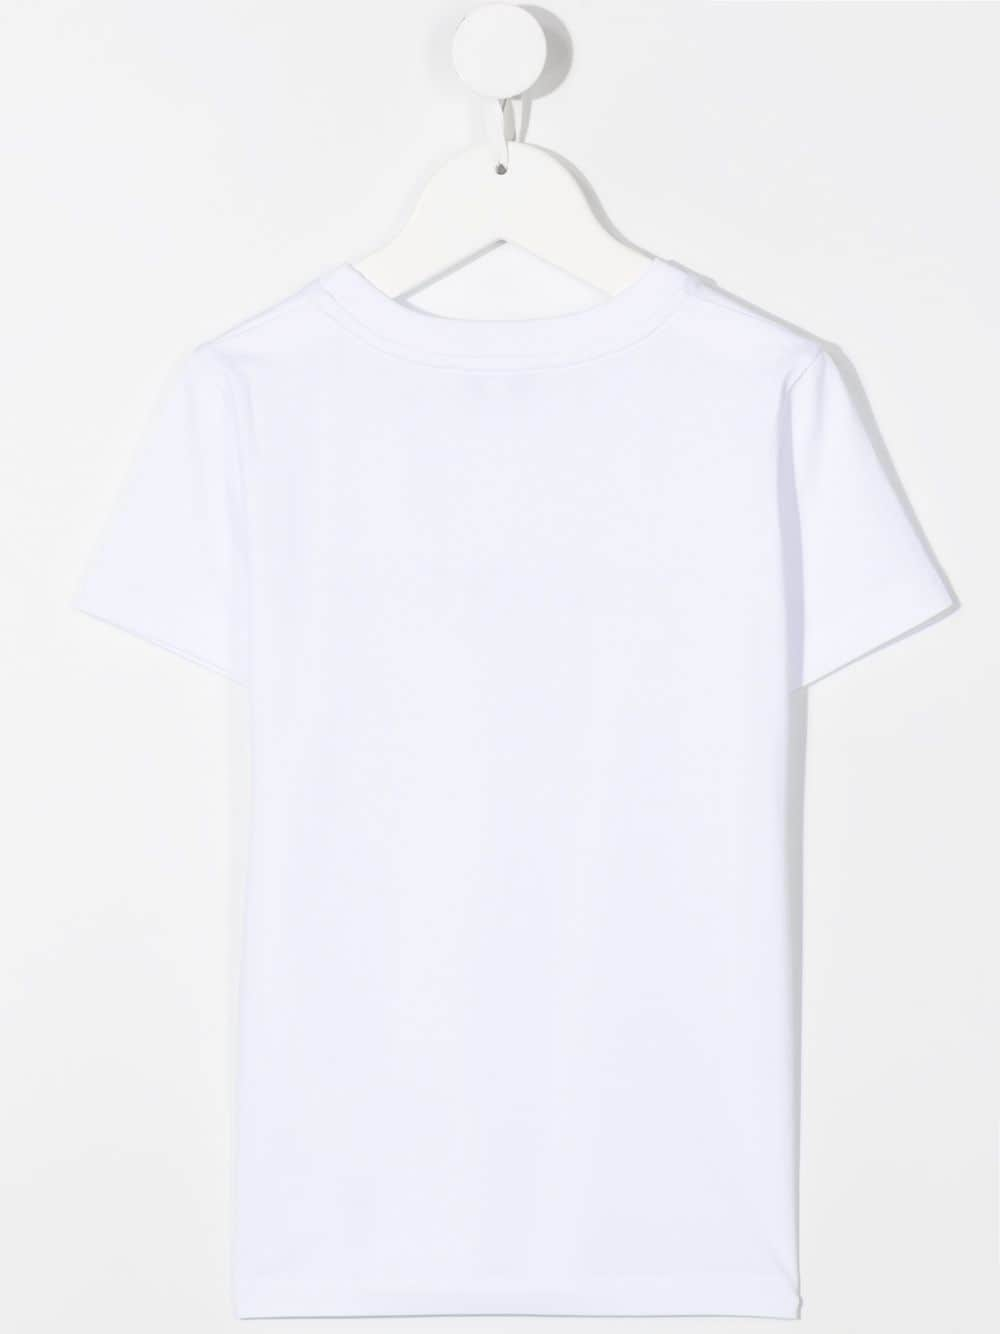 GIVENCHY KIDS Cracked Logo T-Shirt White - Maison De Fashion